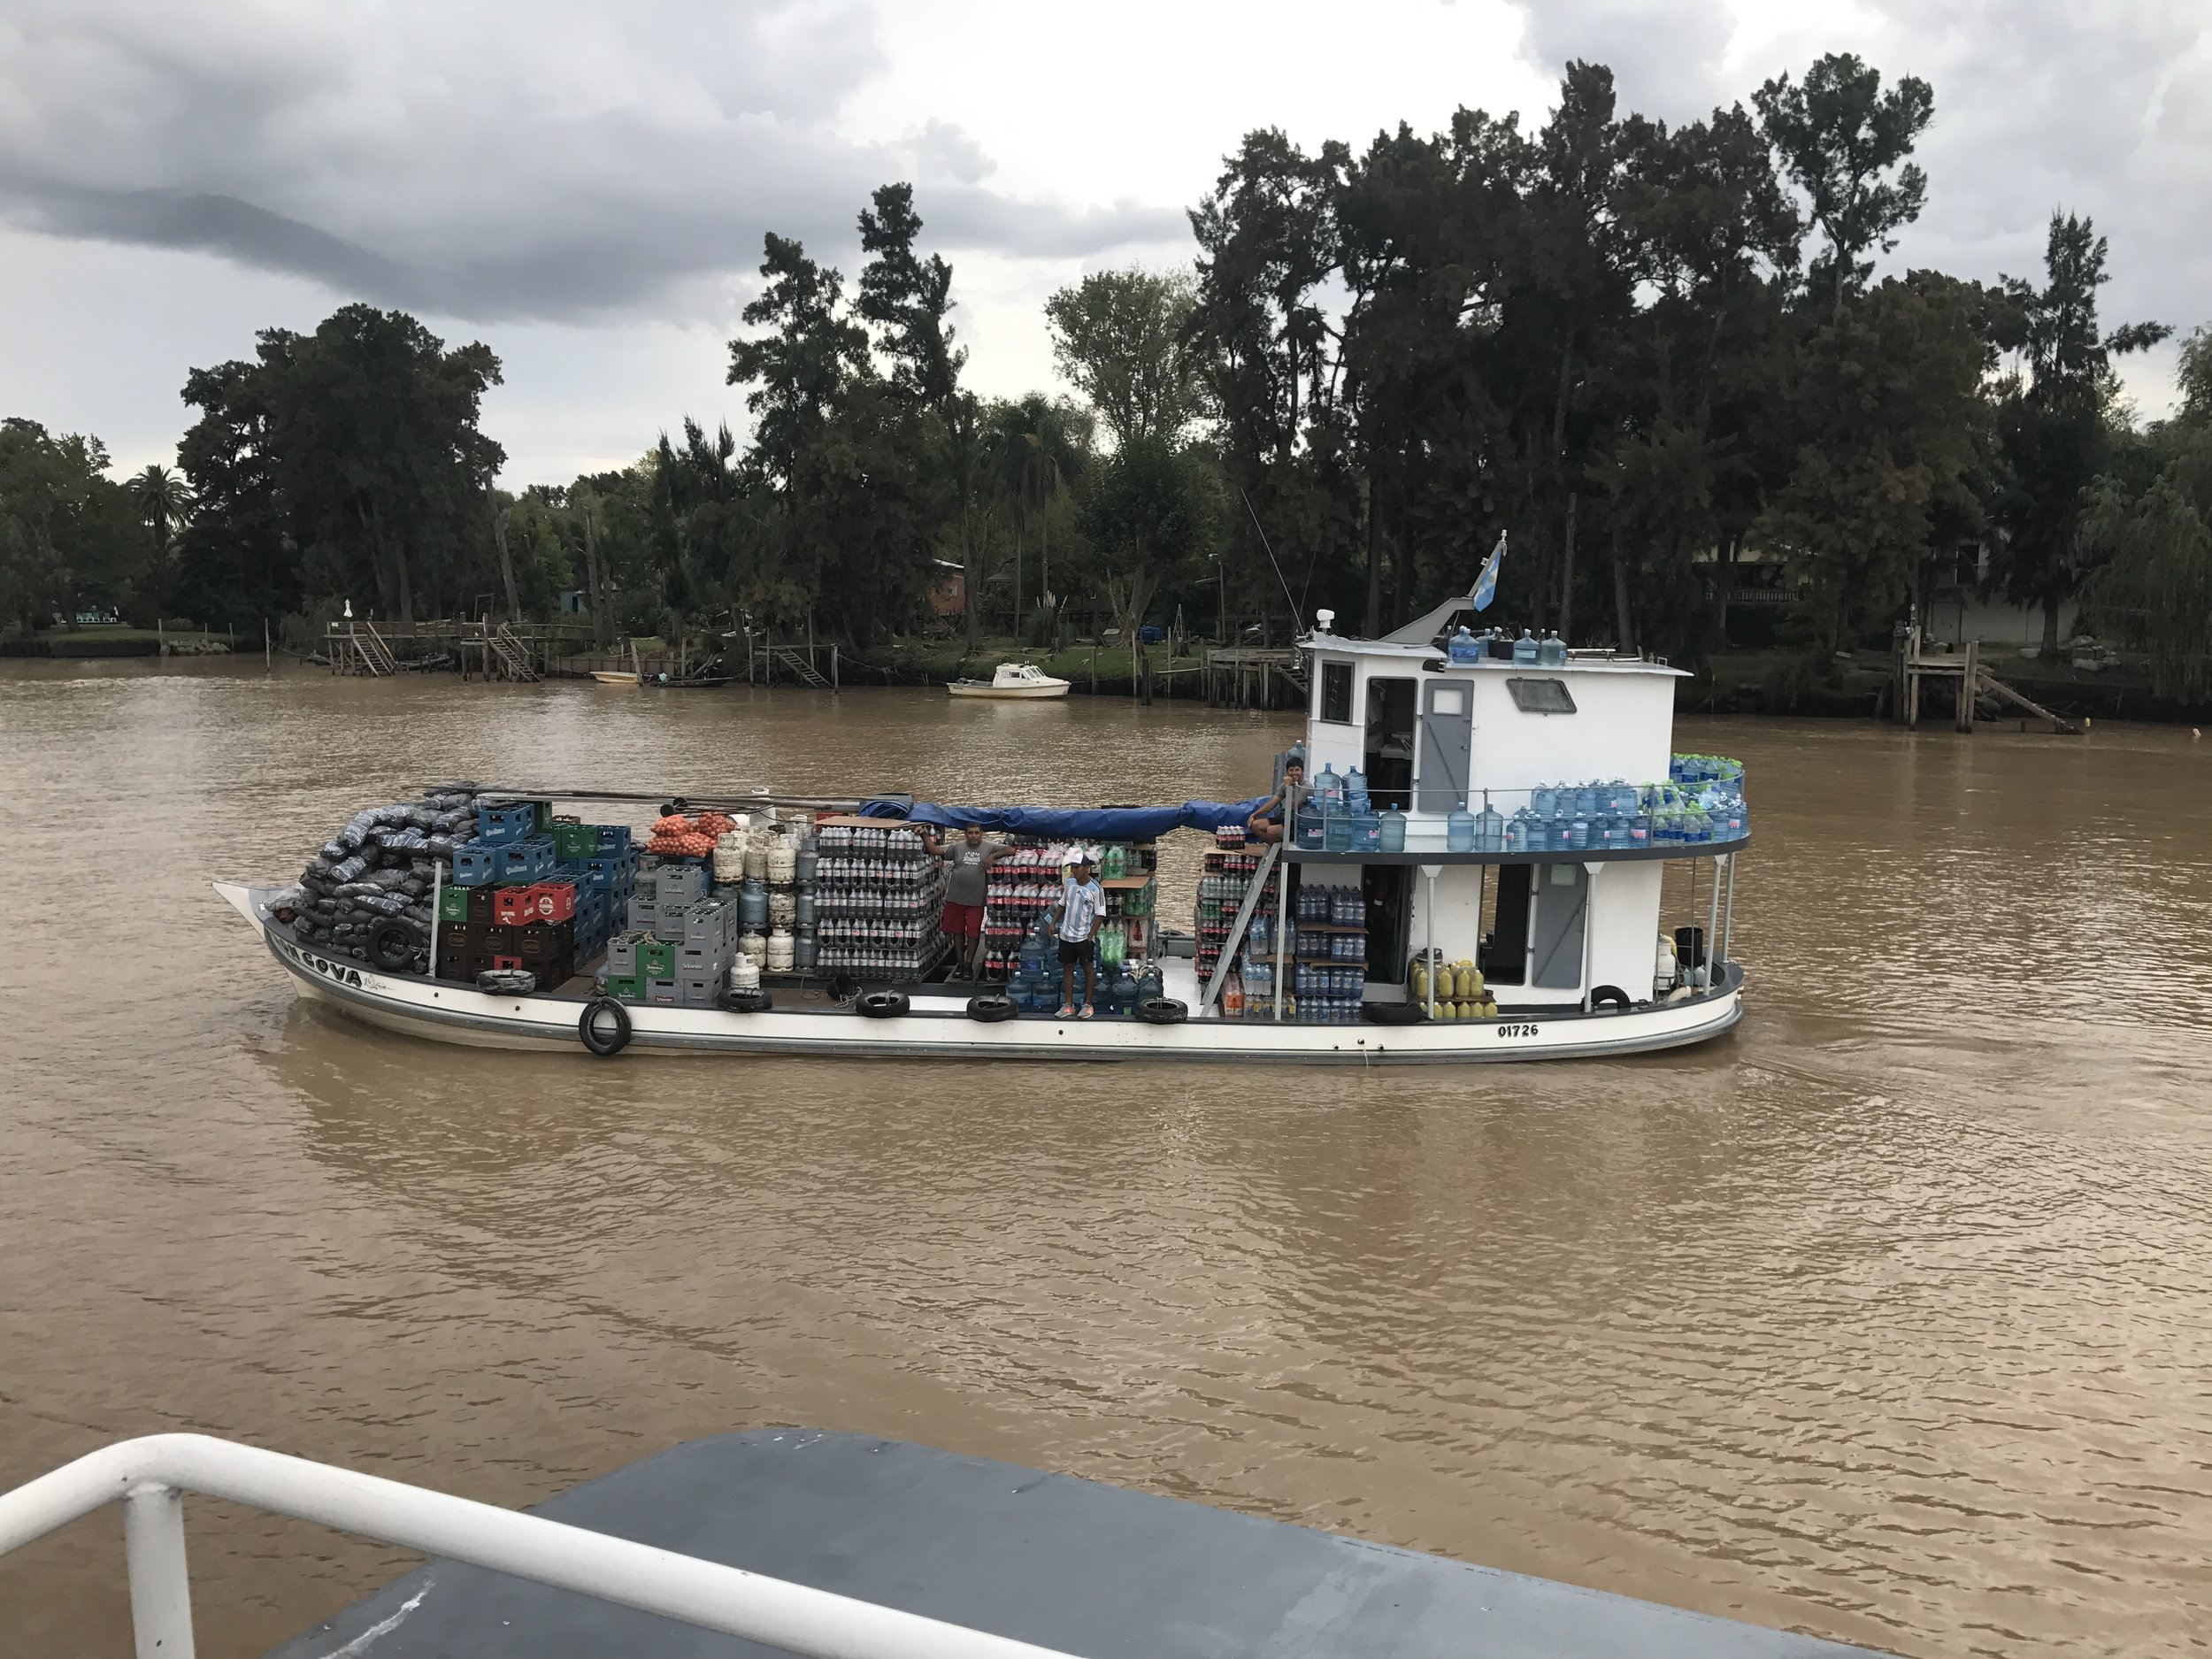 This ship stops by homes in the delta to sell them grocery items. They are the Costco of the delta.